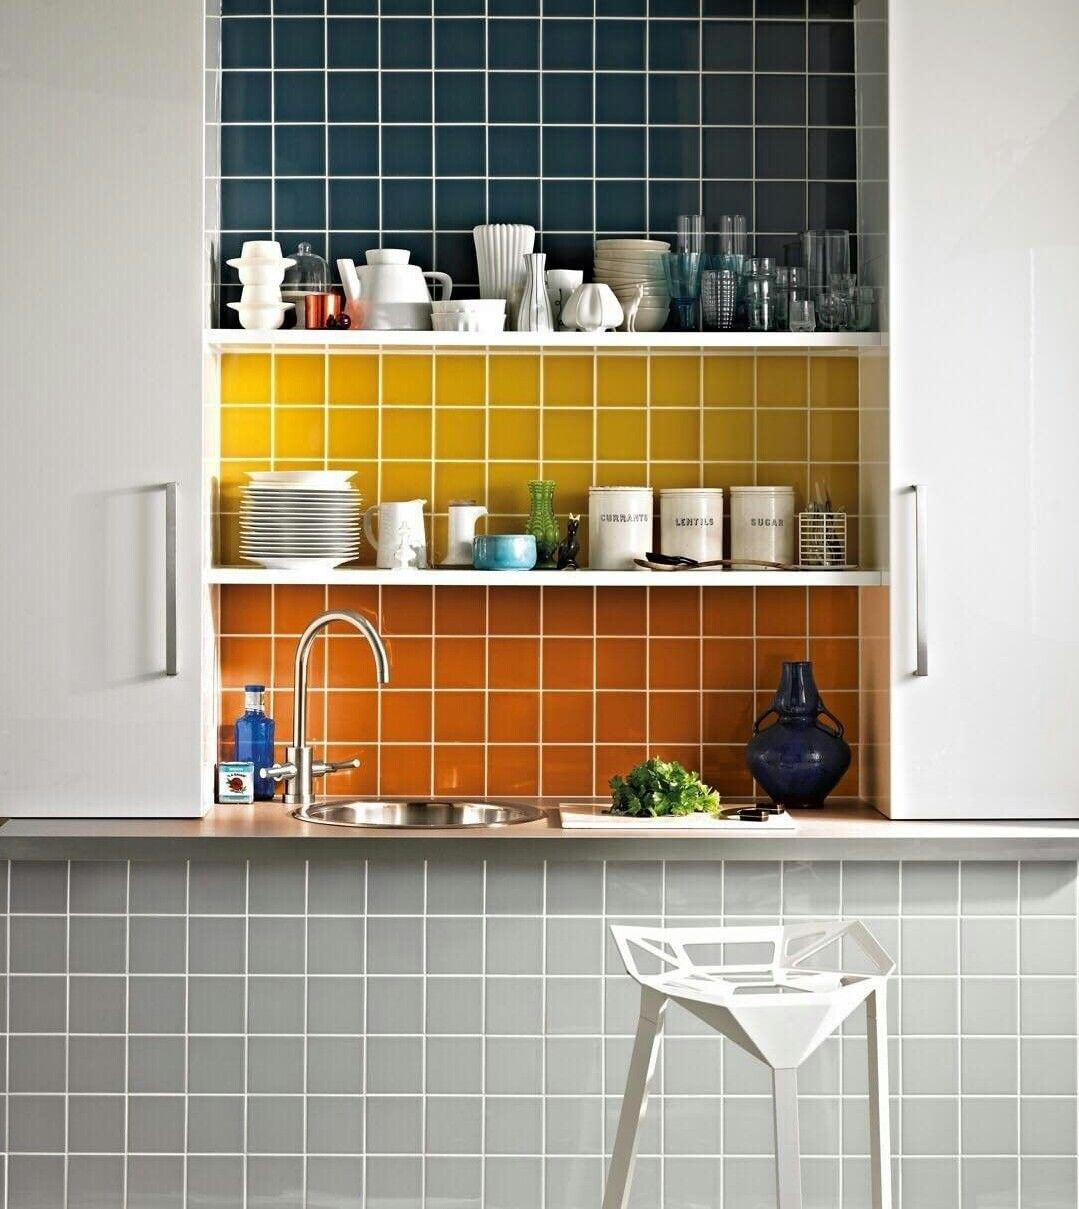 Pin By Elizabeth Elmore On House Yellow Wall Tiles Wall Tiles Kitchen Wall Tiles